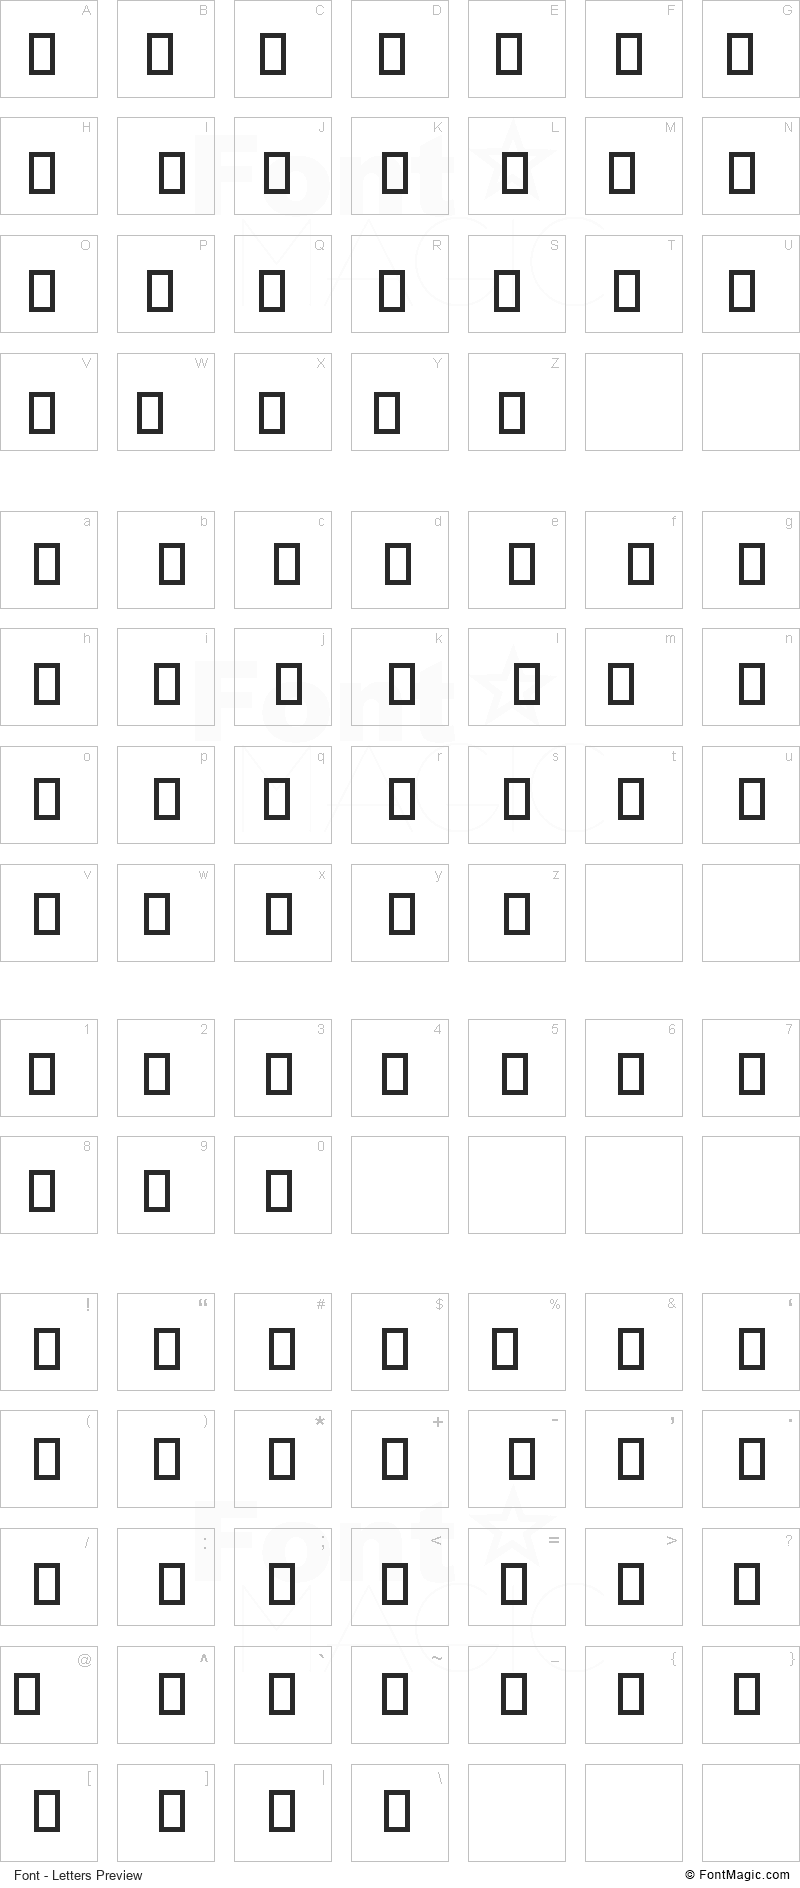 Beauty Font - All Latters Preview Chart